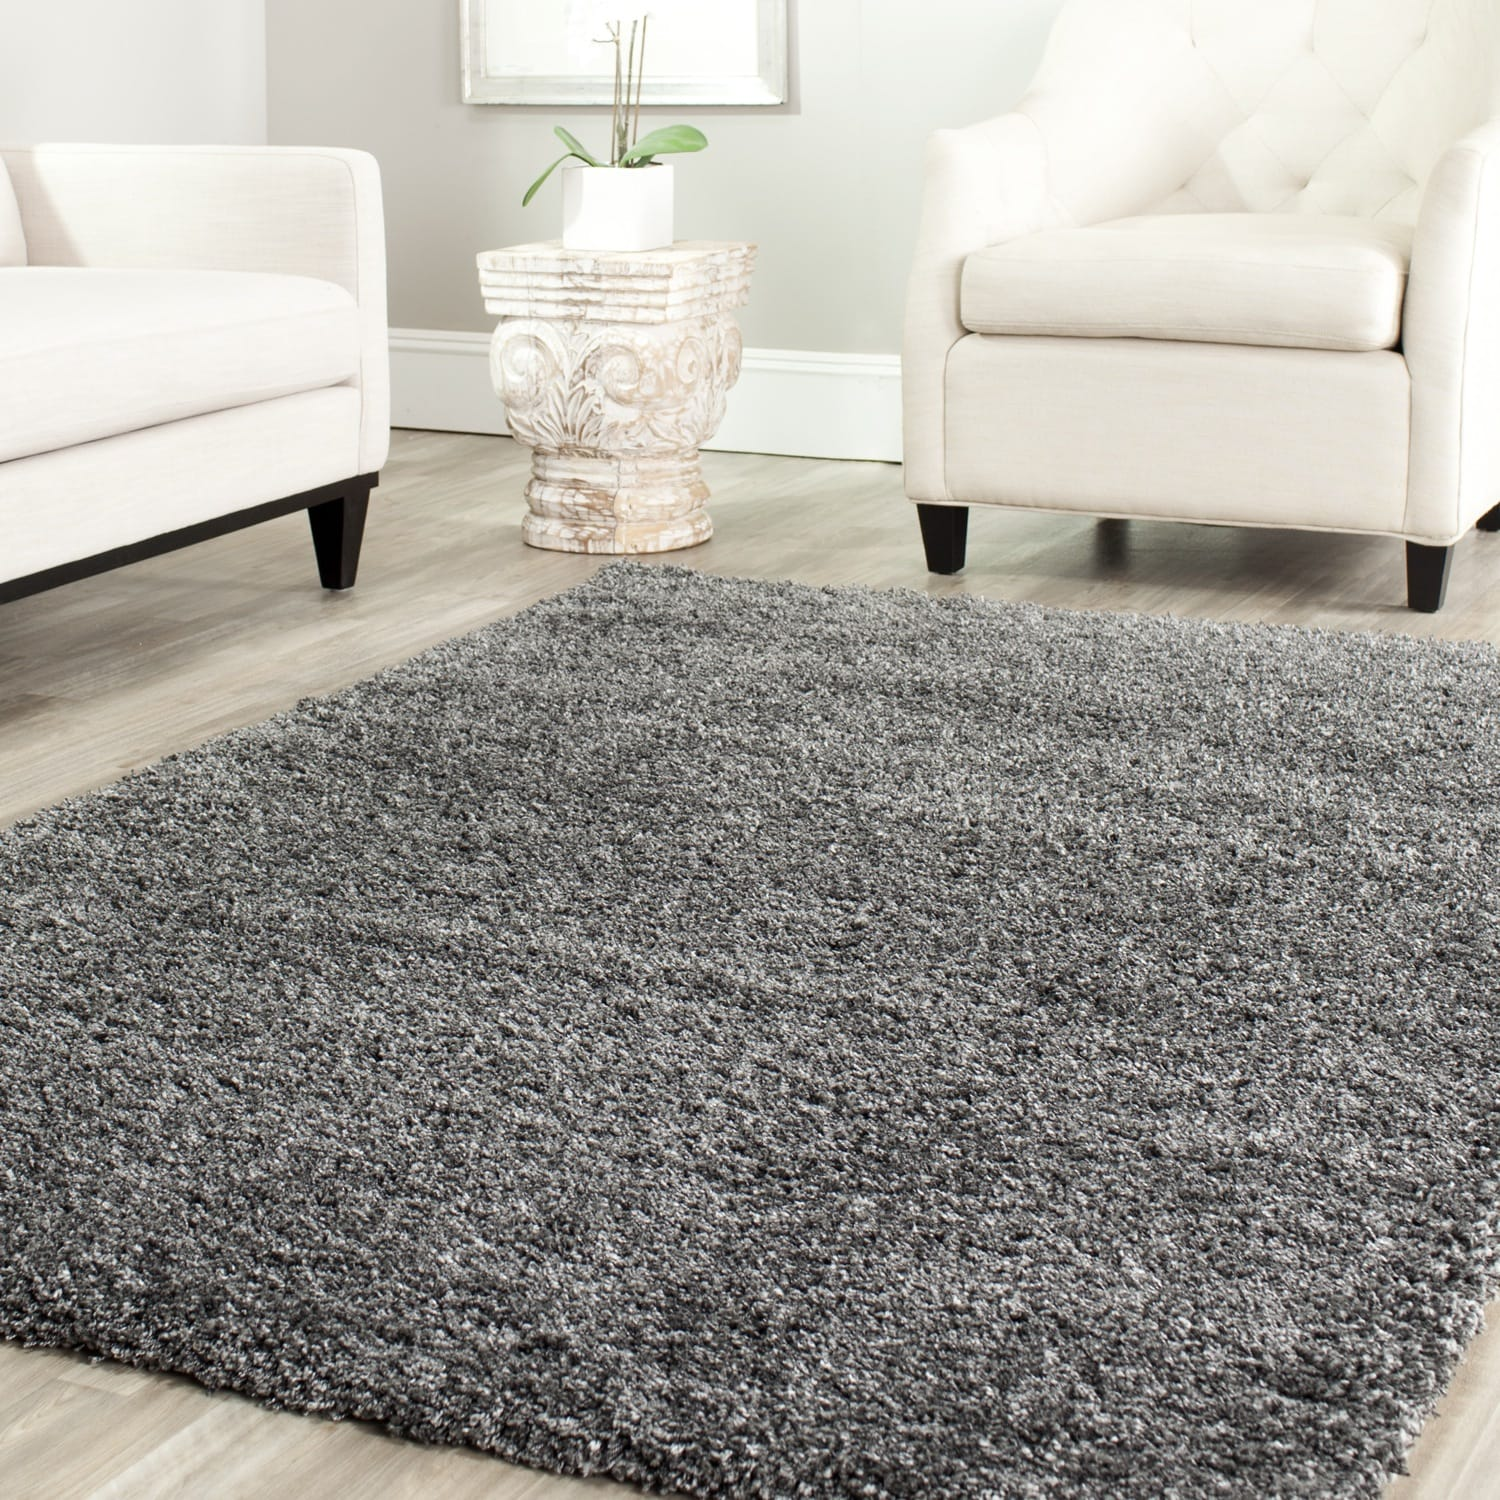 Safavieh cozy solid dark grey shag rug overstock shopping great